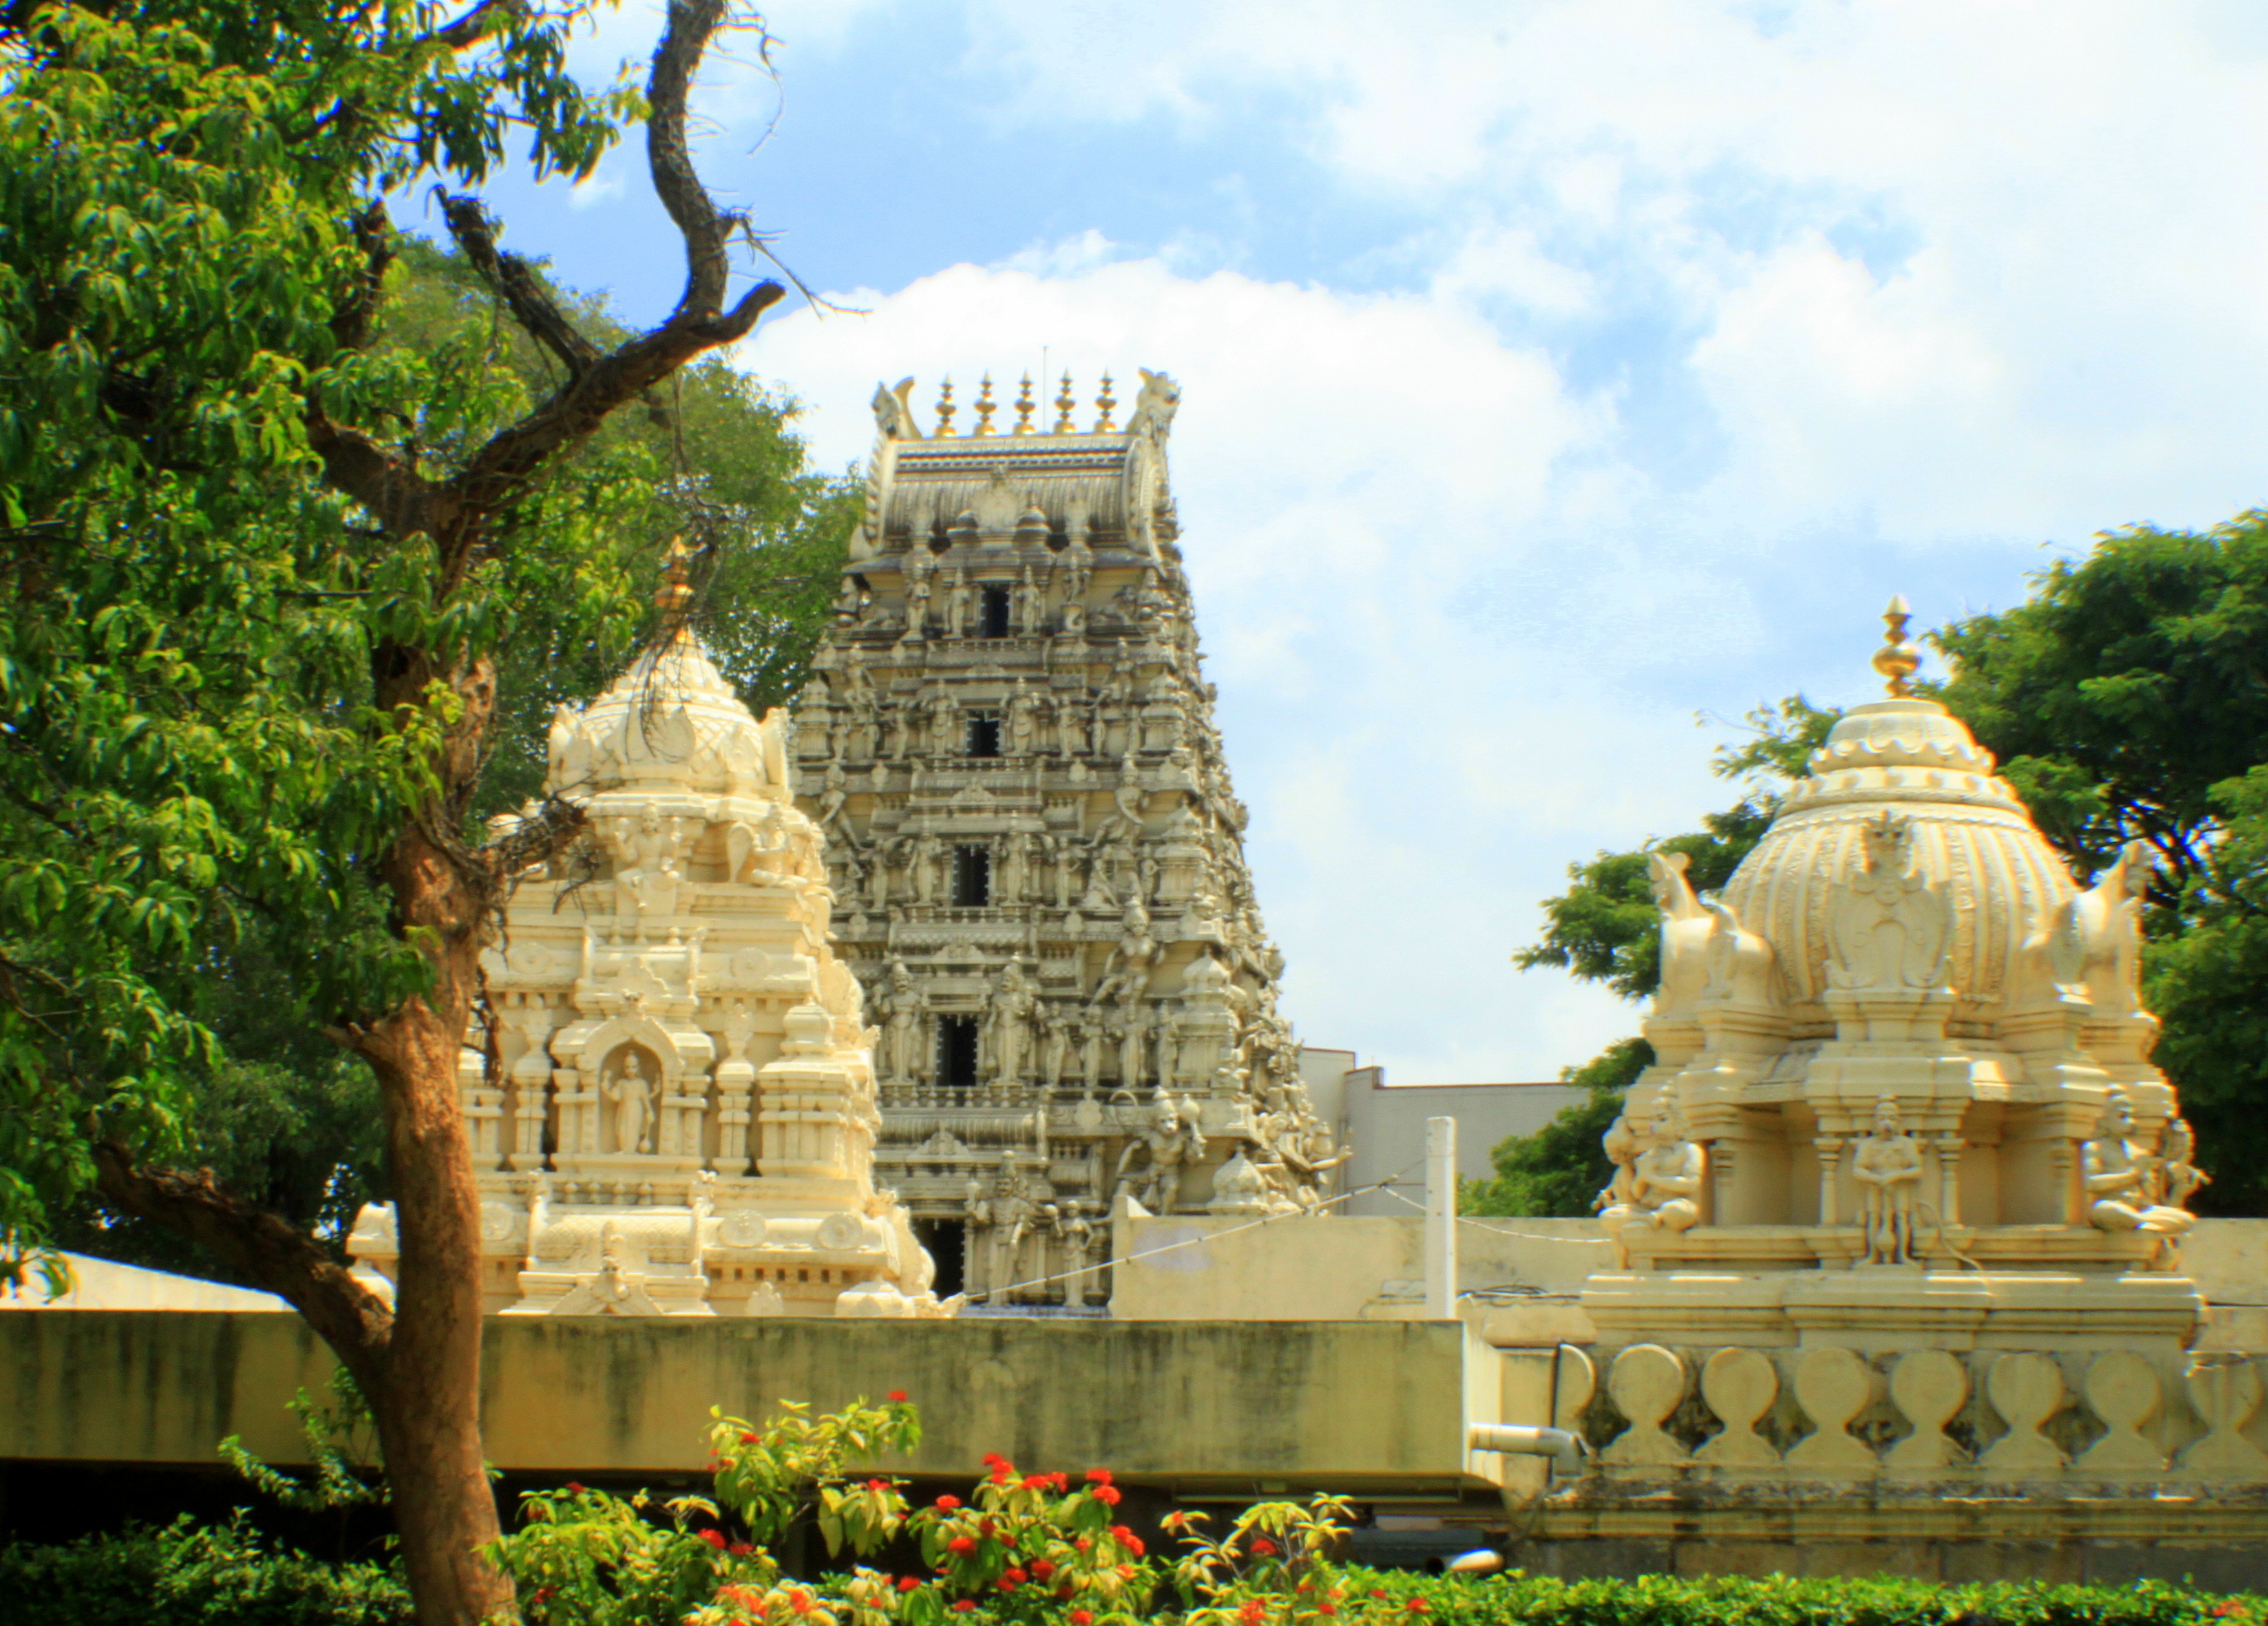 Famous ayyappa temple in bangalore dating. chinese dating show australia on globe.